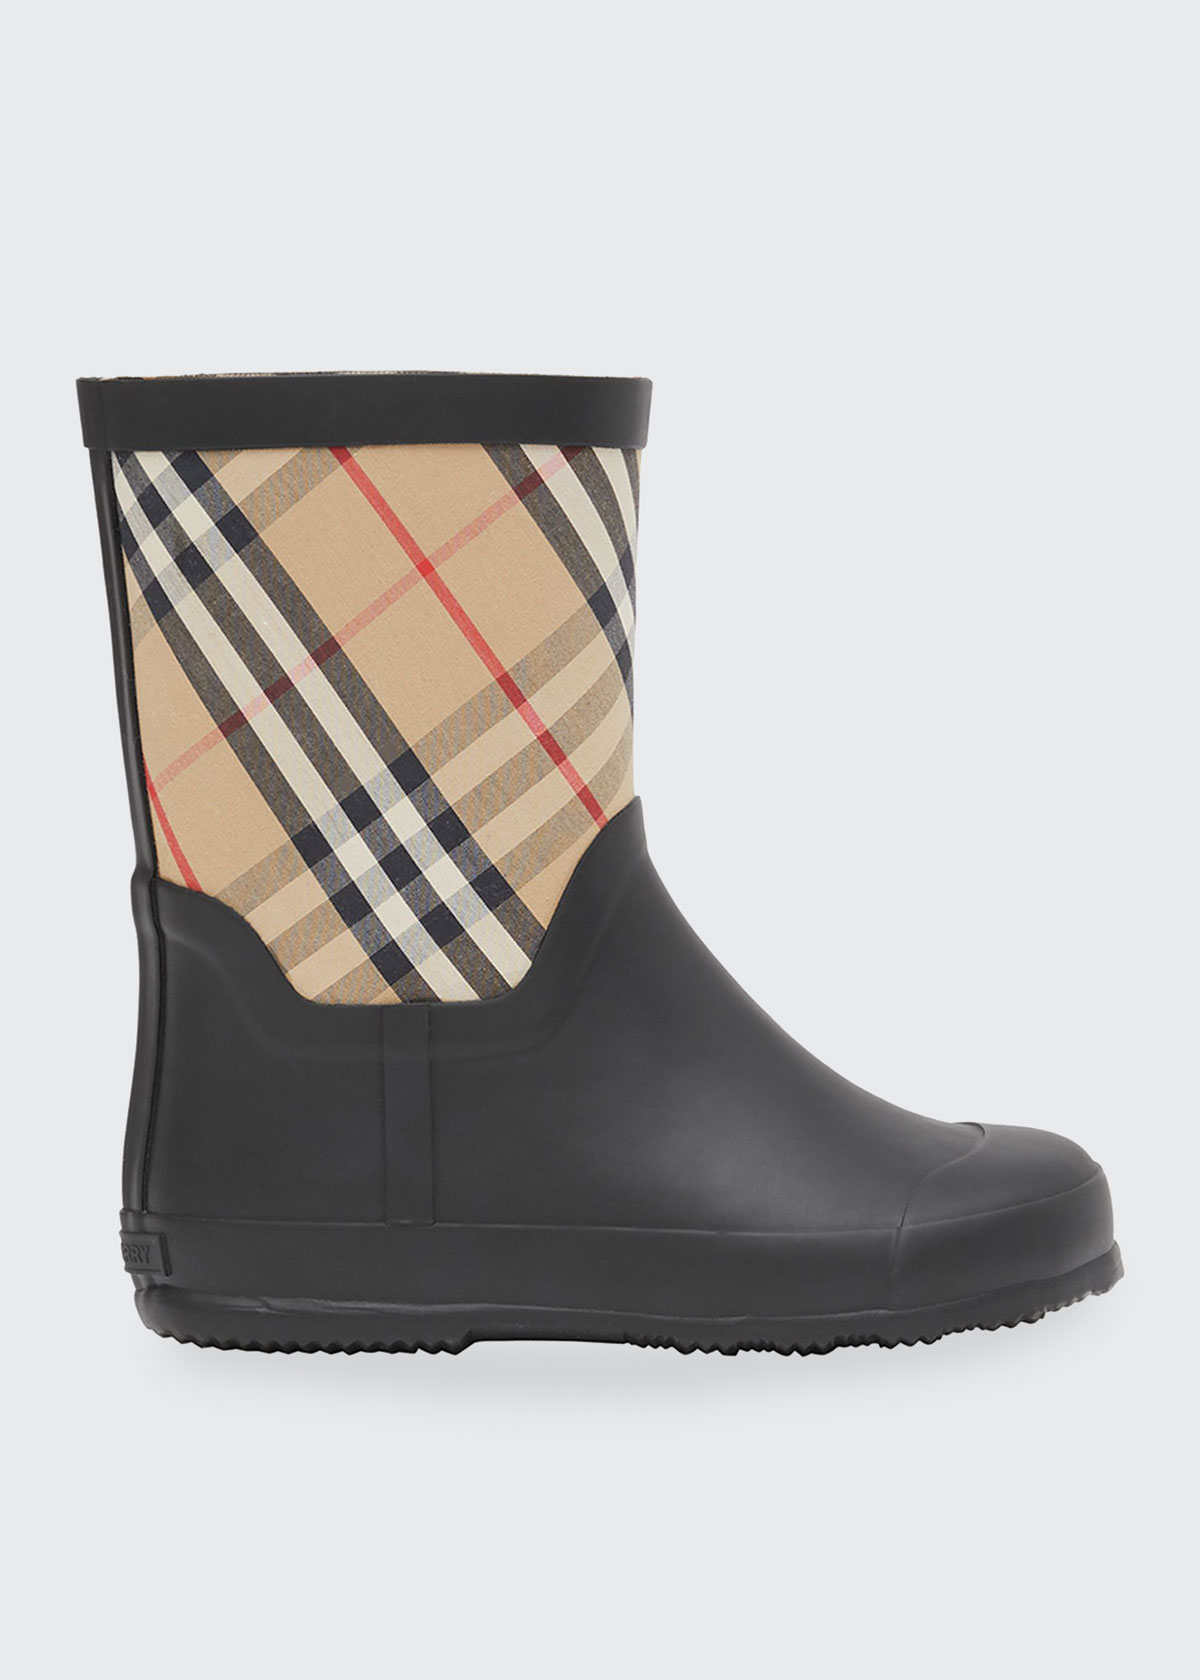 Burberry RANMOOR VINTAGE CHECK RAIN BOOTS, TODDLERS